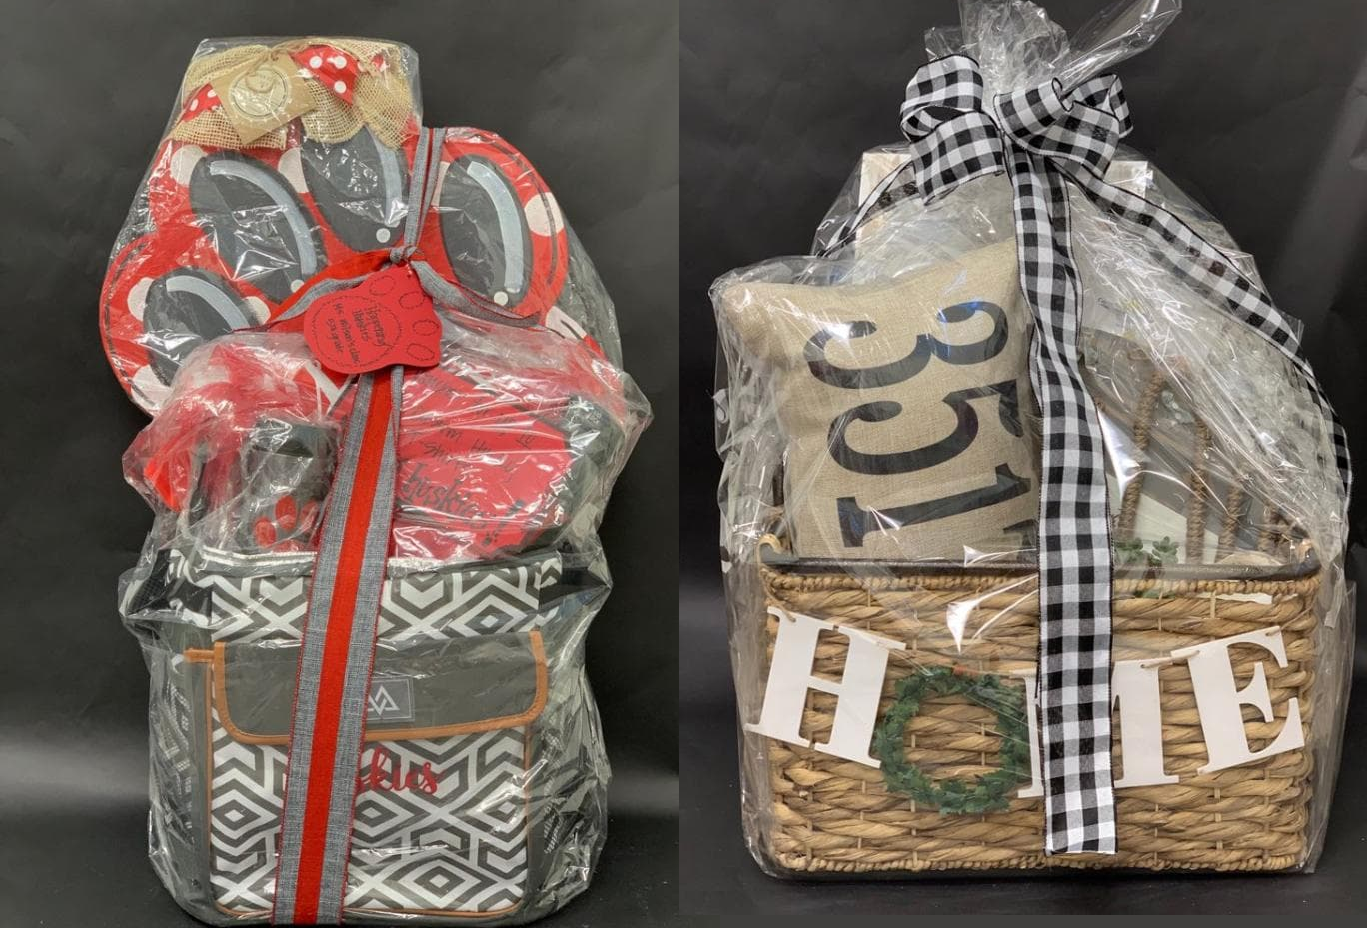 48 baskets up for bid at Cahaba Elementary silent auction fundraiser